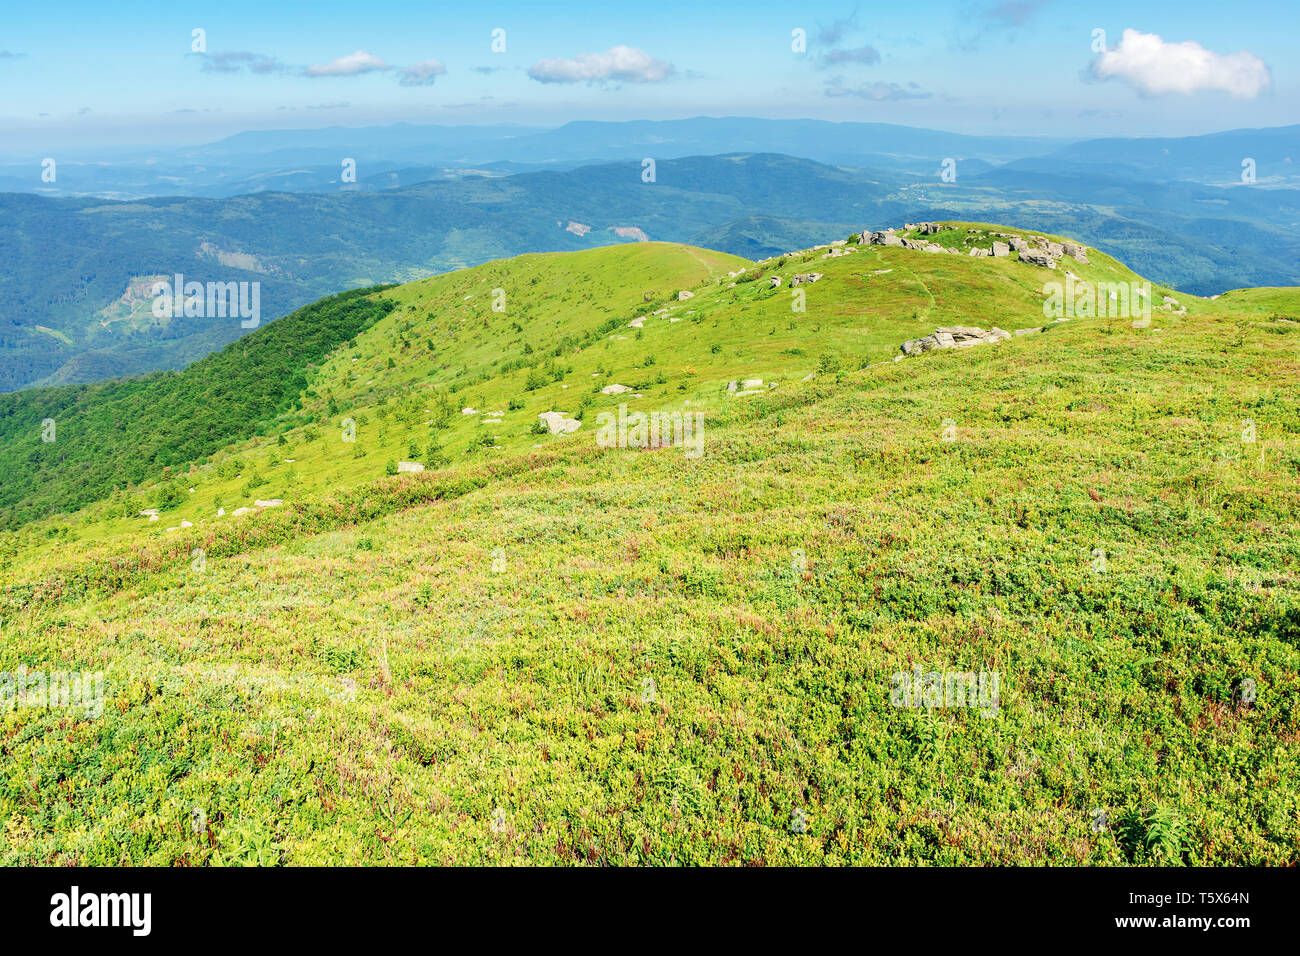 beautiful mountain landscape in summertime. green grassy hills with bunch of rocks in the distance. path through the meadow. sunny weather with fluffy - Stock Image